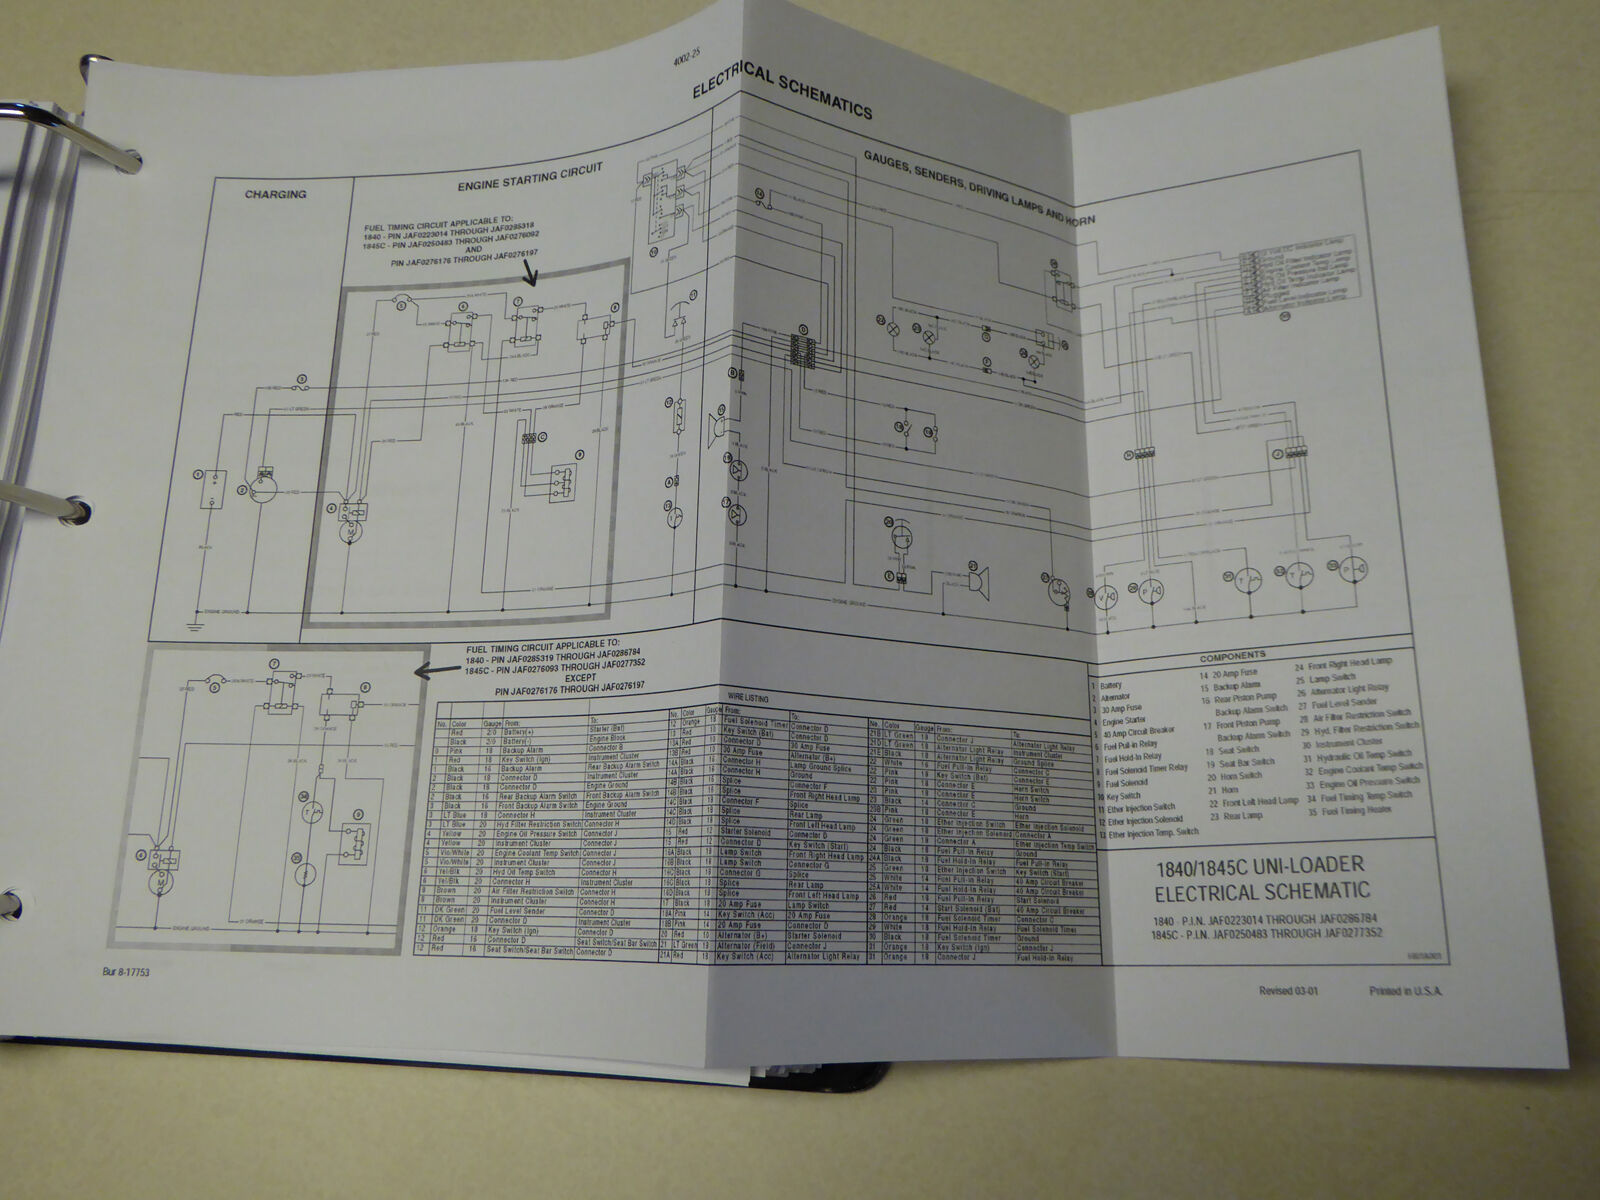 case 1845c electrical diagram case image wiring case 1845c uni loader skid steer service manual repair shop book on case 1845c electrical diagram